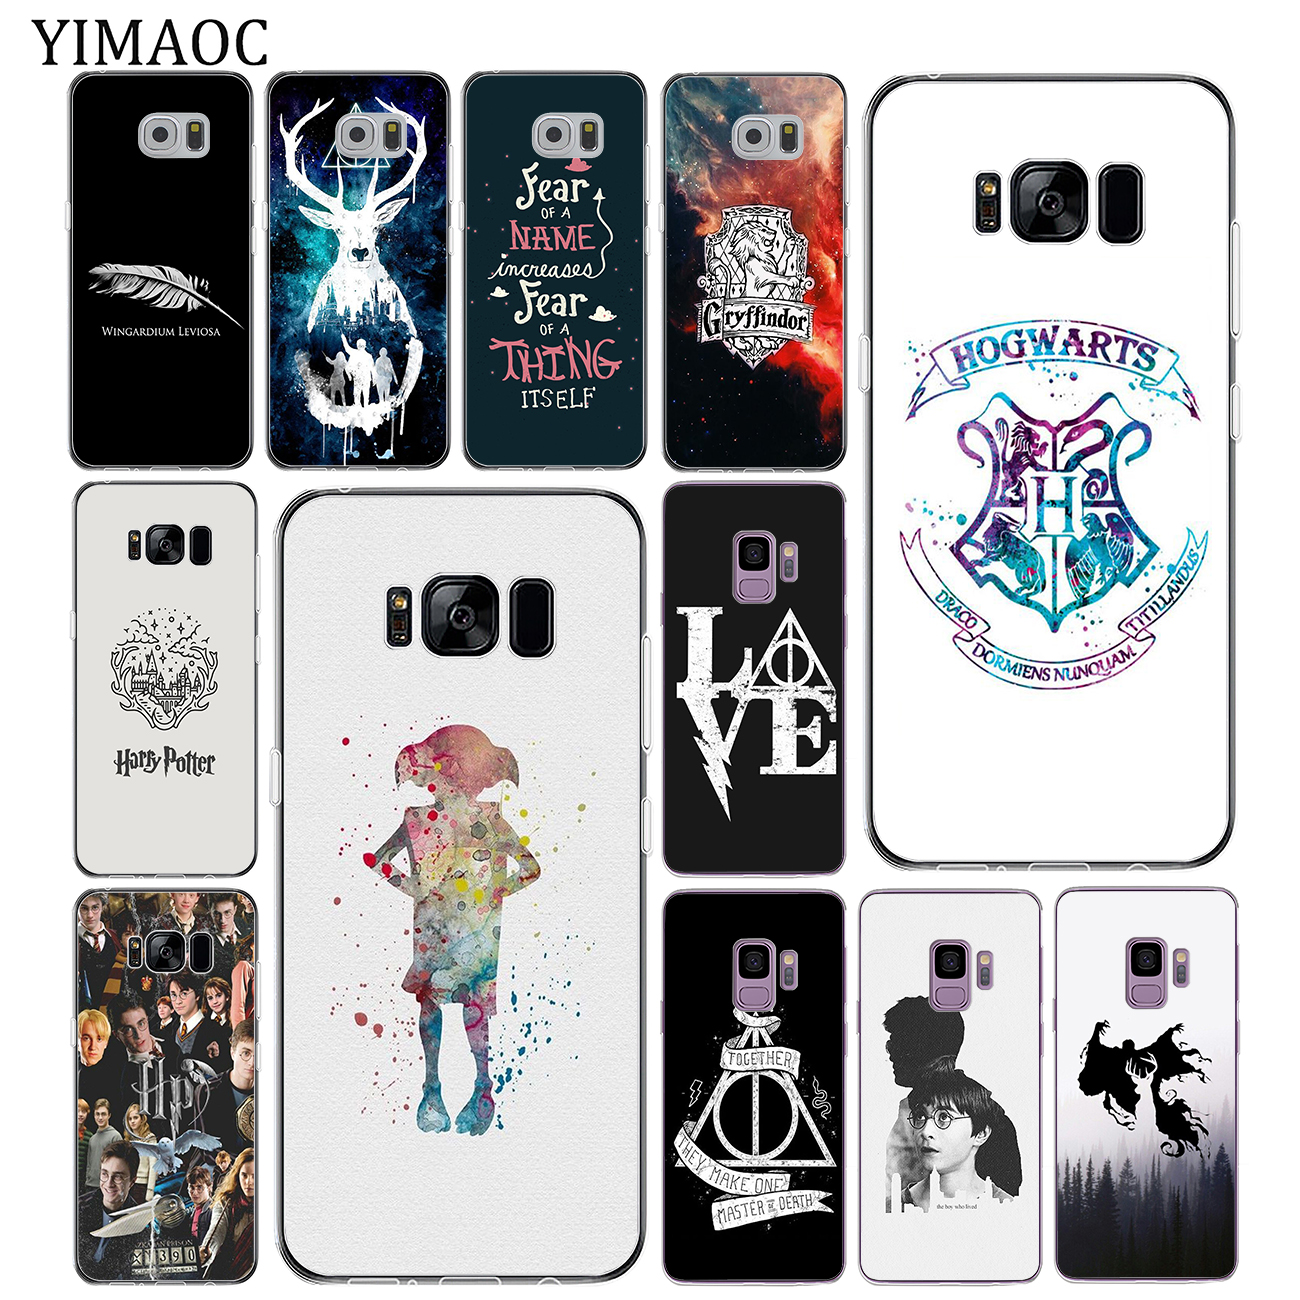 S10e Lite Plus Edge S5 Mini Soft Tpu Cover Coque Ciciber Cute Doctor Heart Phone Case For Samsung Galaxy S8 S9 S10 S5 S7 S6 S10 Fitted Cases Cellphones & Telecommunications